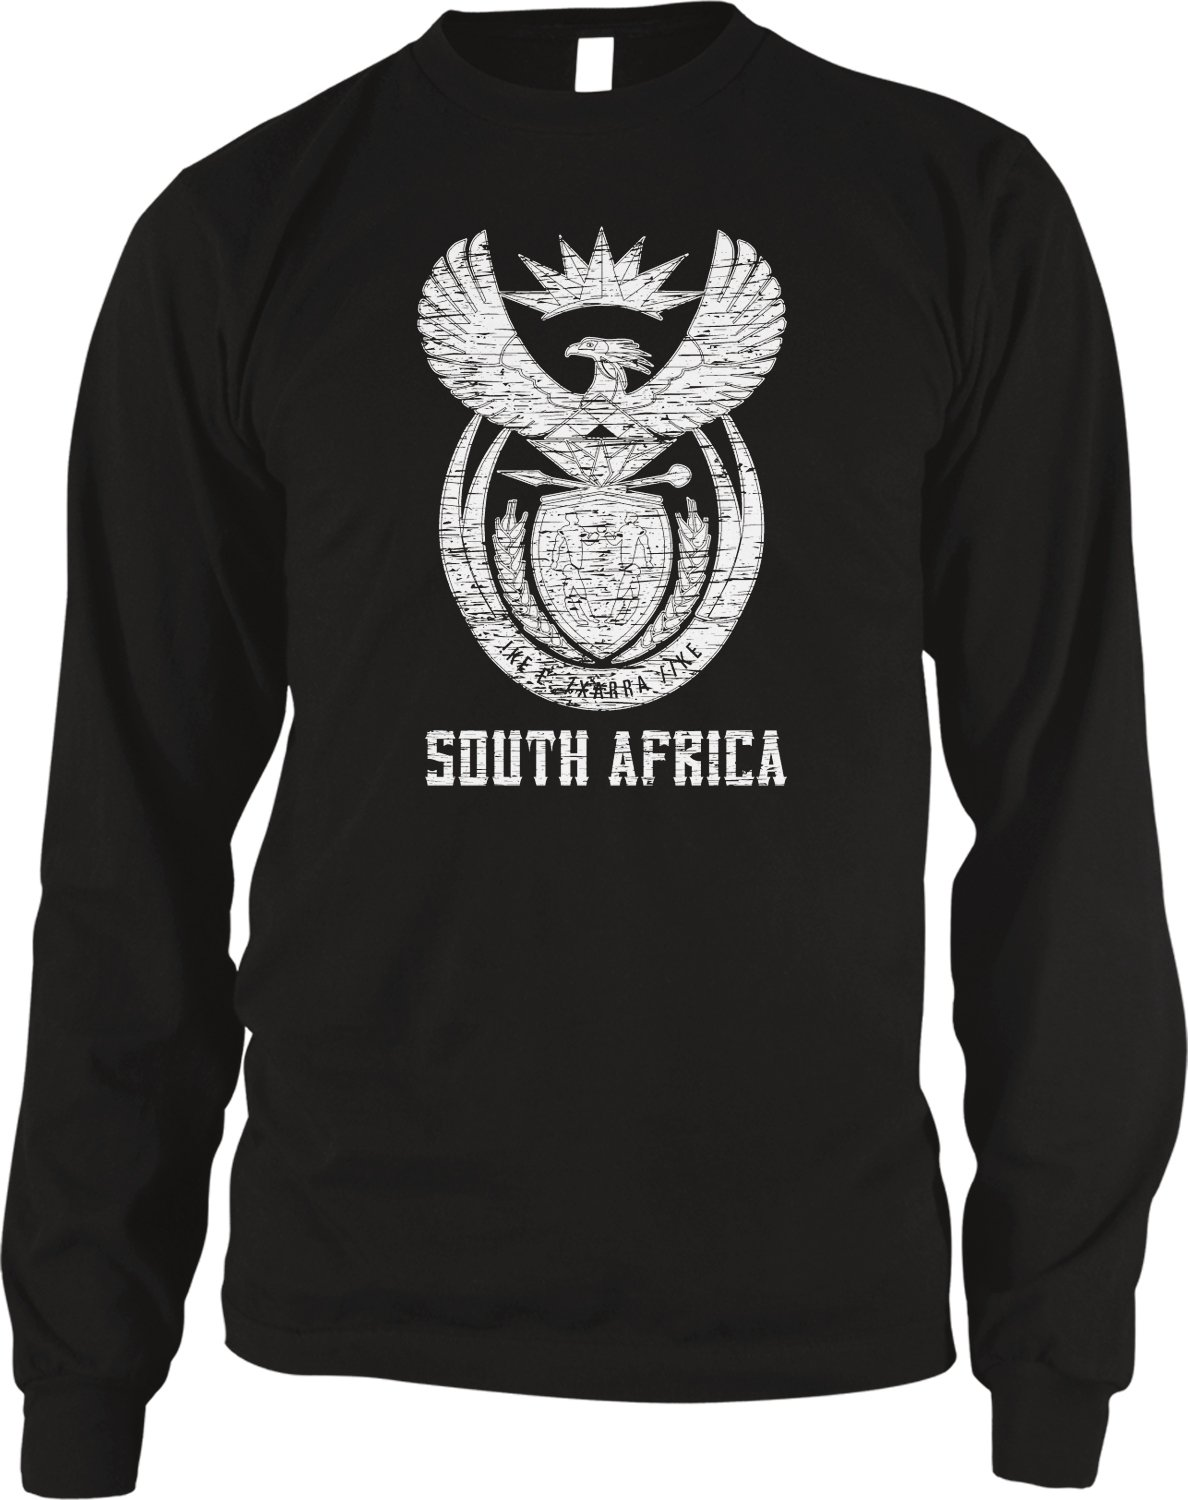 S South Africa Coat Of Arms South African Thermal Shirt